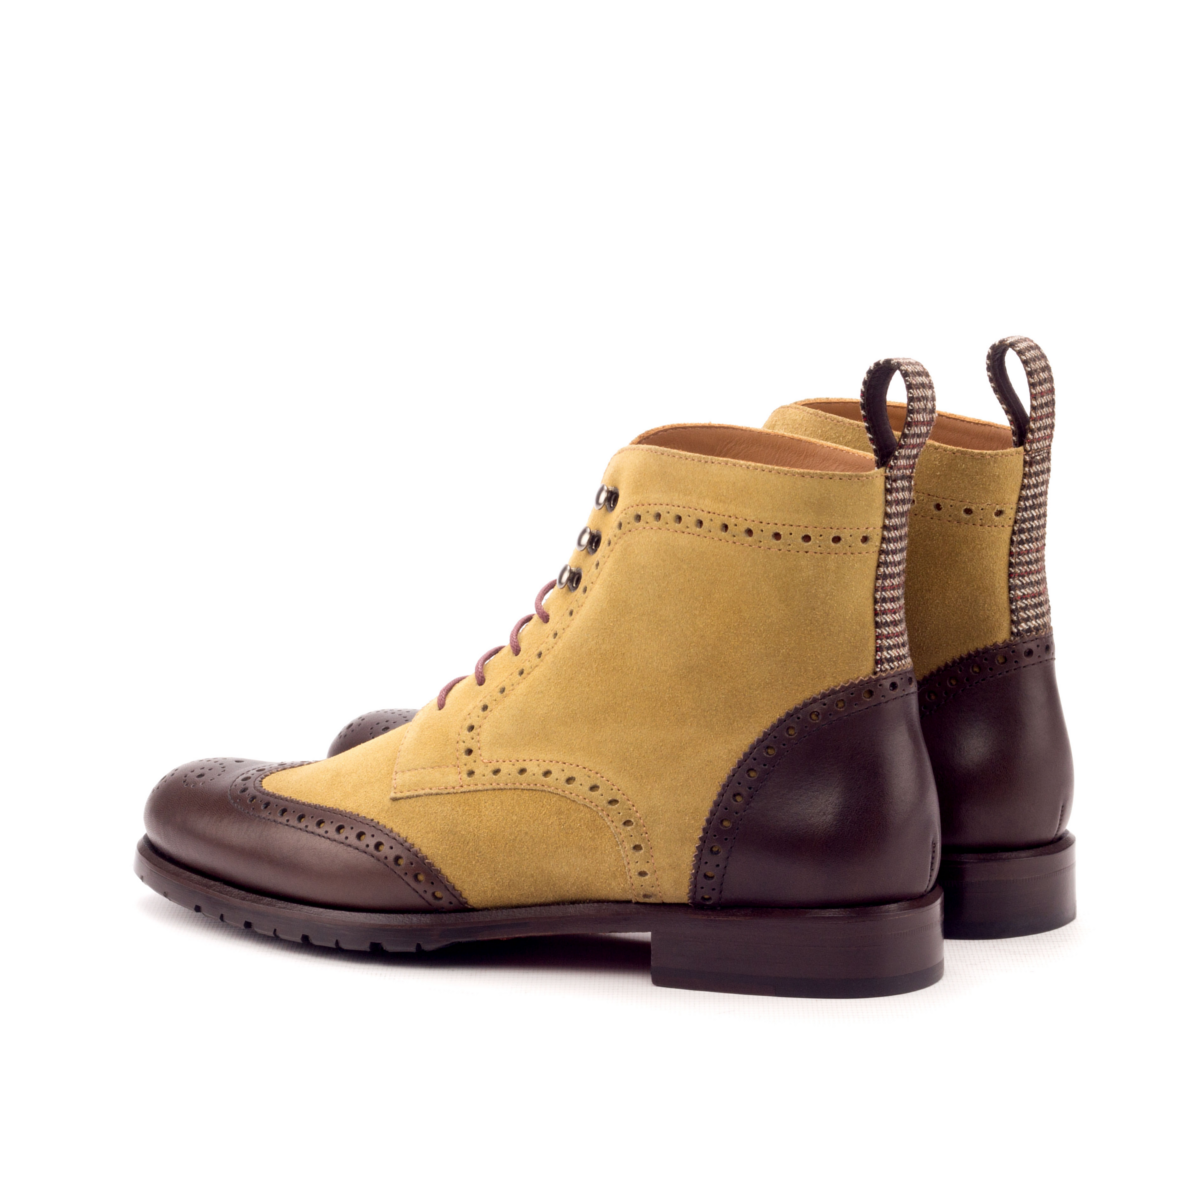 Box calf and suede women's Wingtip Boots